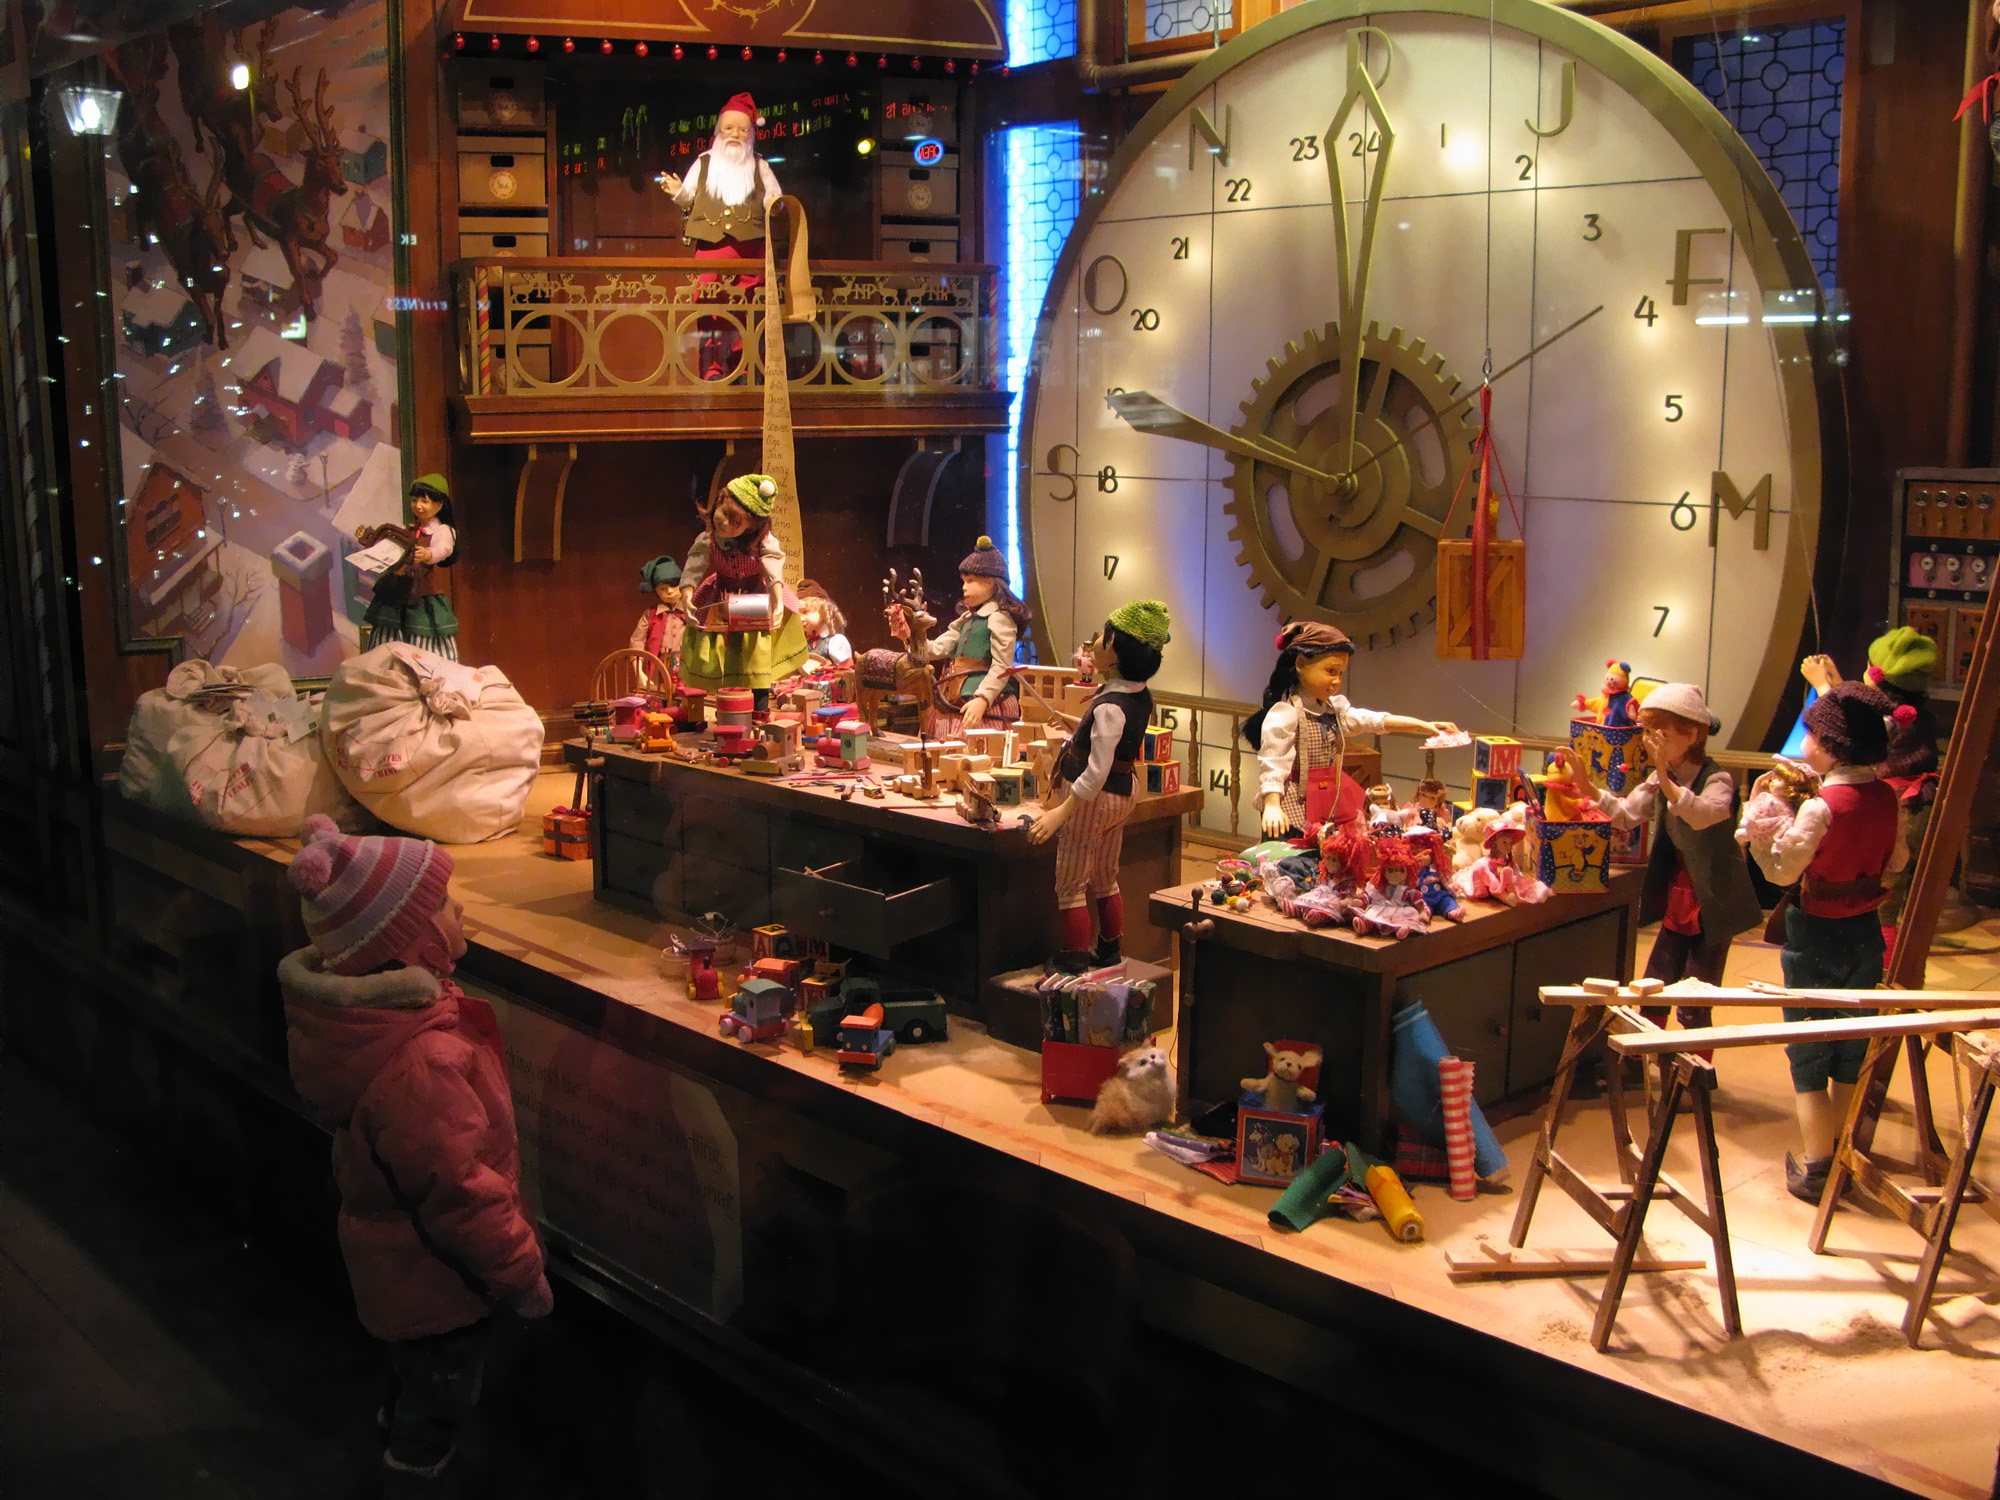 Paris in December - Christmas Window Displays